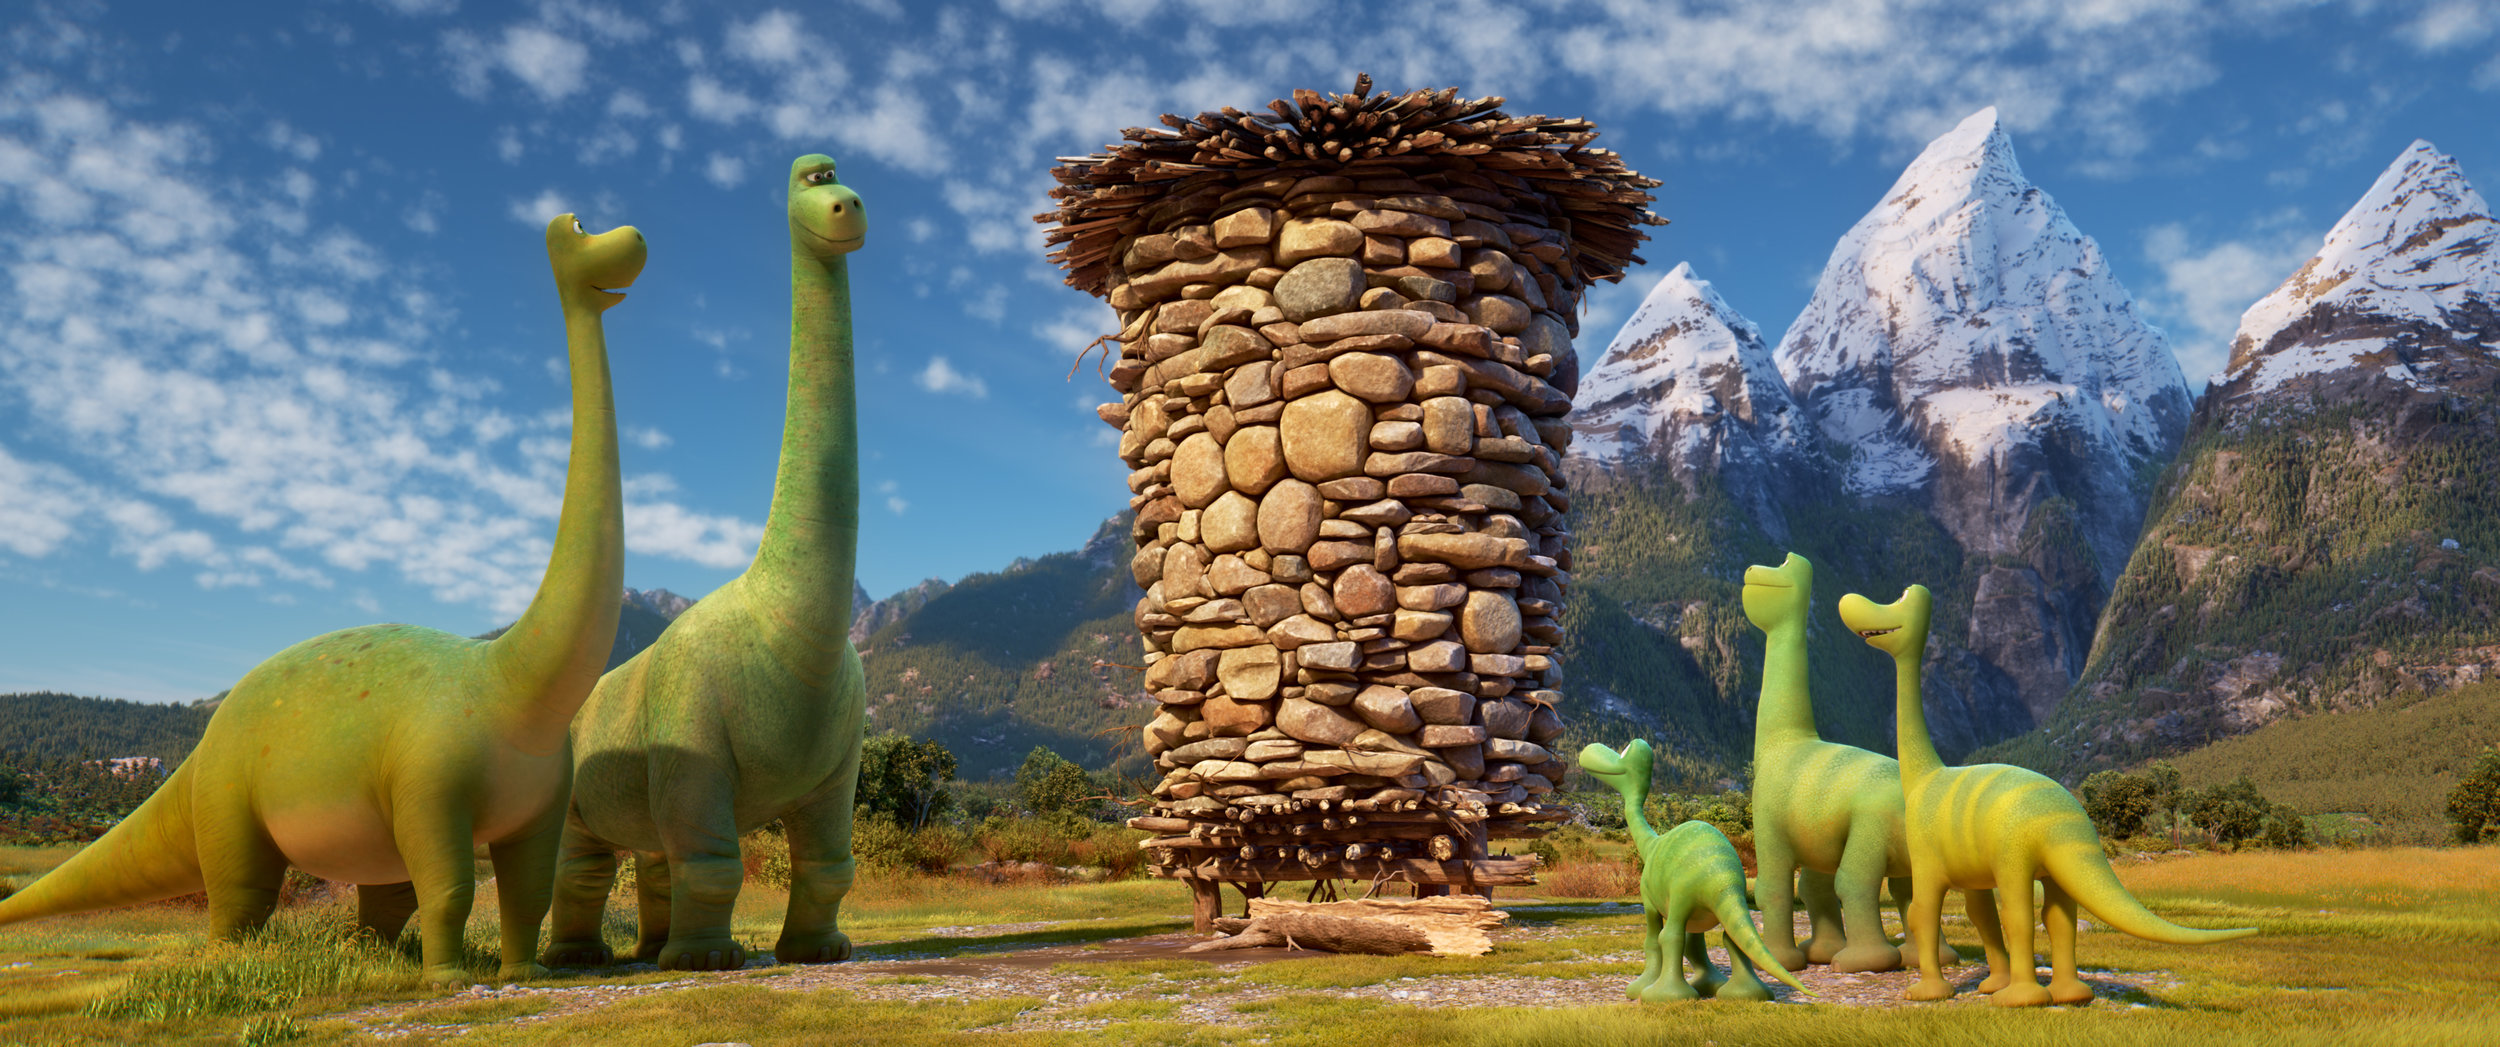 THE GOOD DINOSAUR - Pictured (L-R): Momma, Poppa, Arlo, Buck, Libby. ?2015 Disney?Pixar. All Rights Reserved.